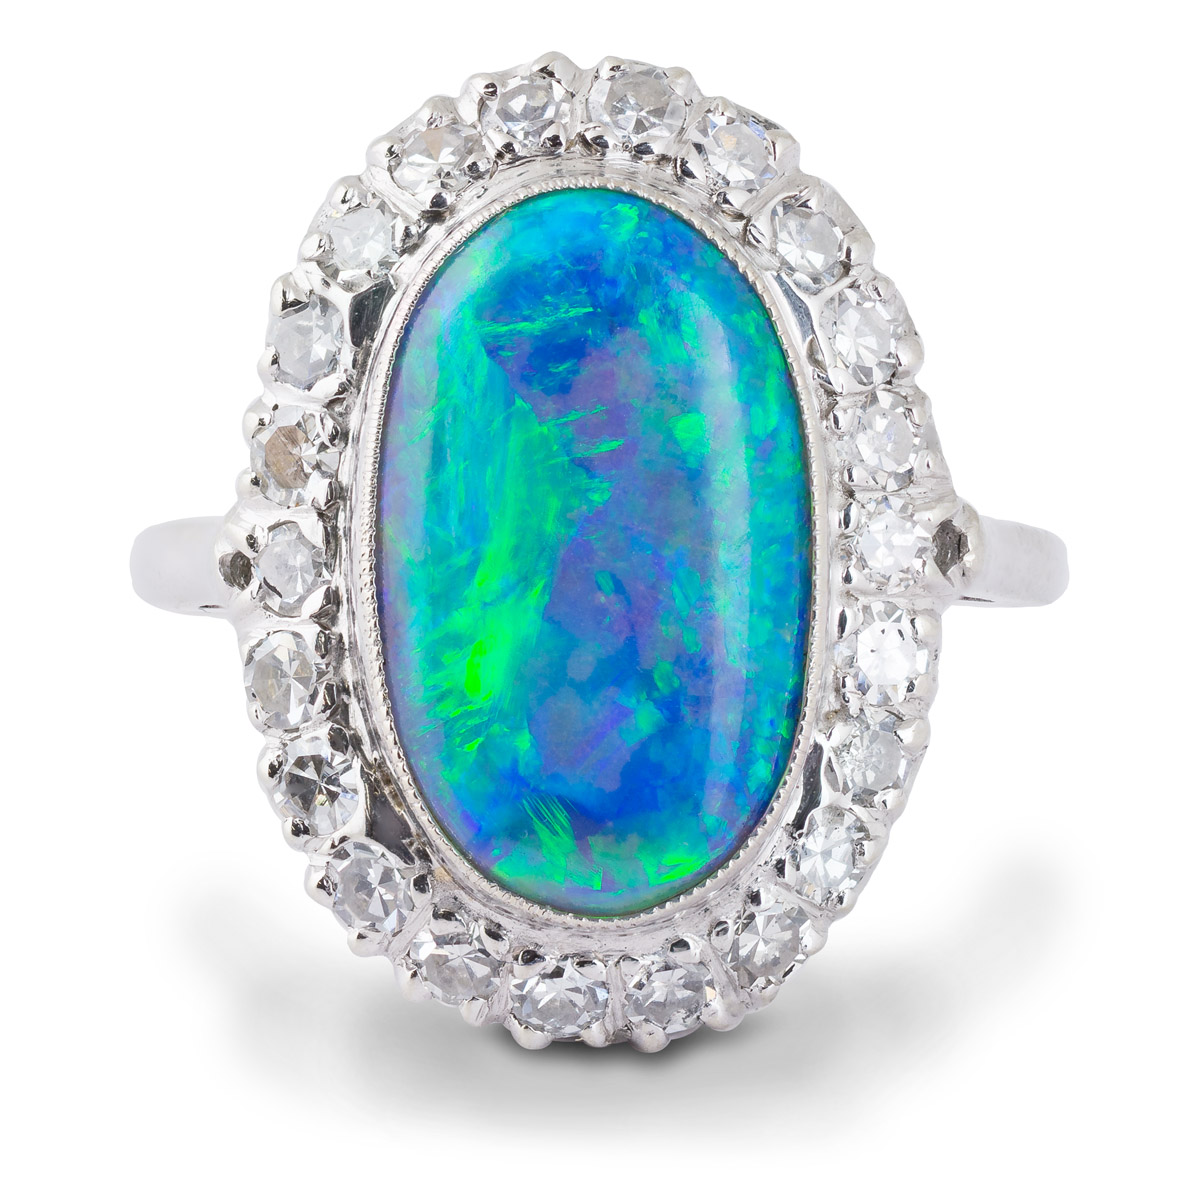 Vintage Black Opal Ring With Diamond Halo